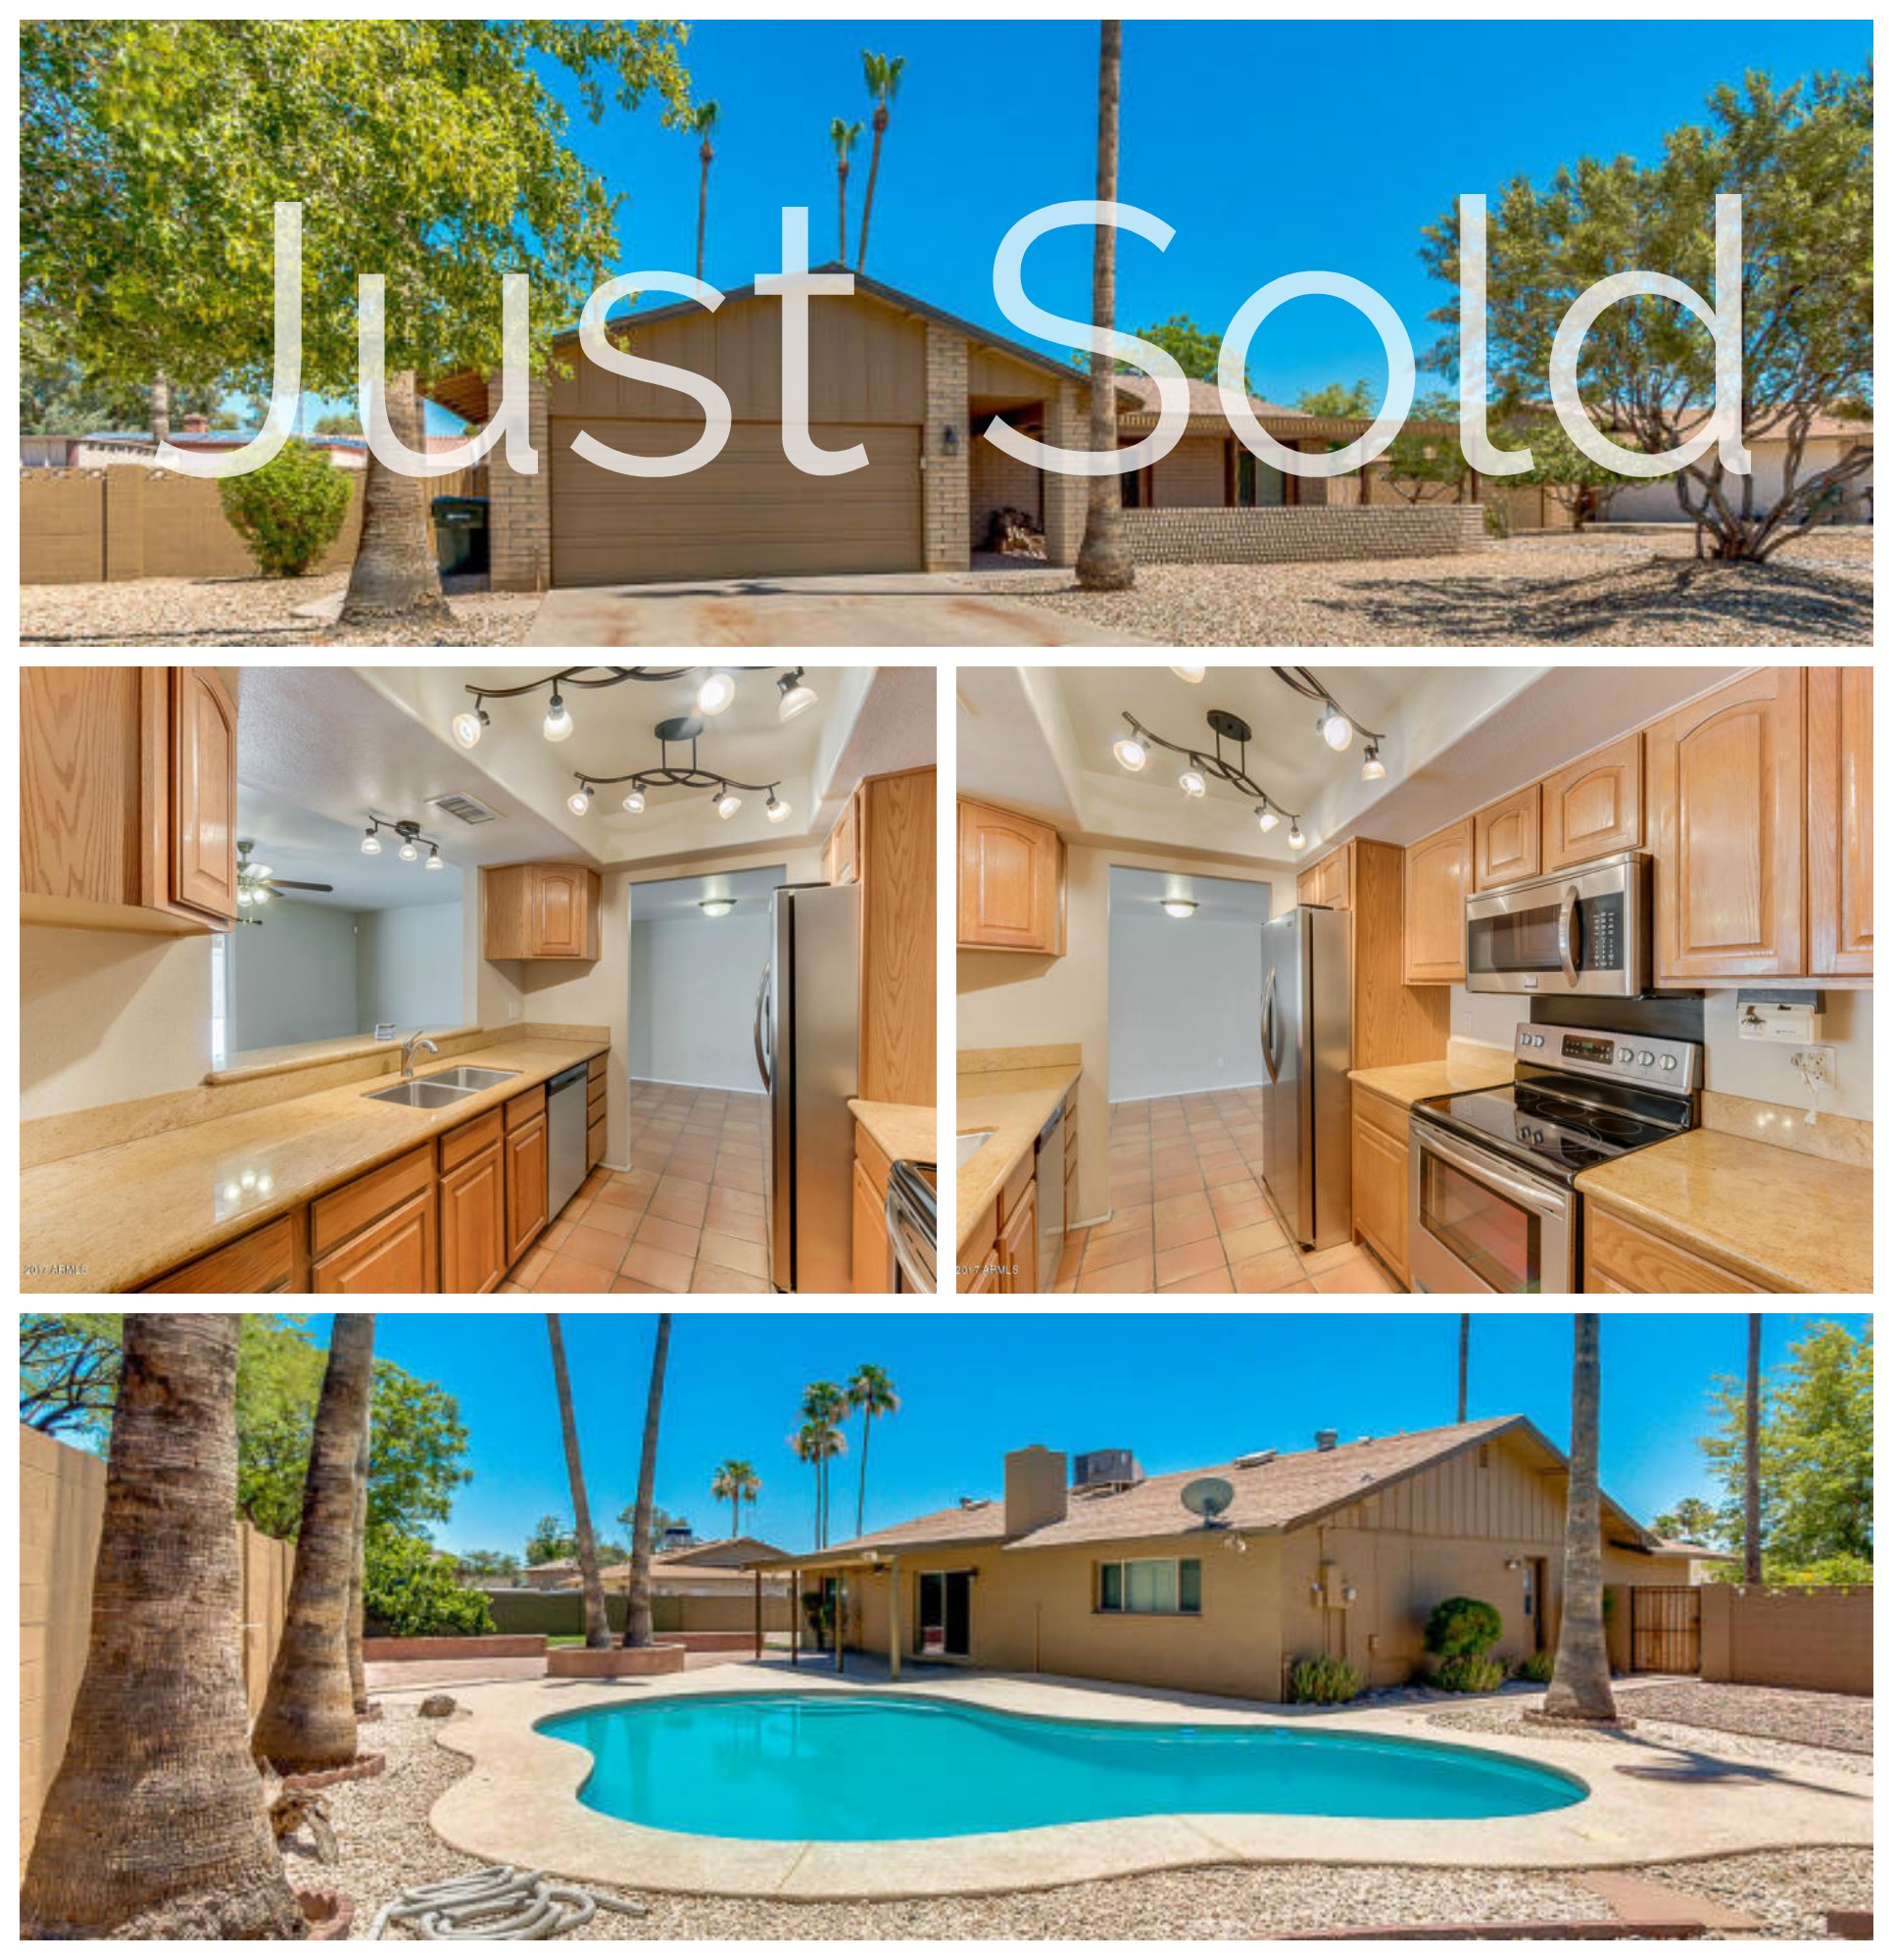 JUST SOLD! 5112 E Voltaire Ave